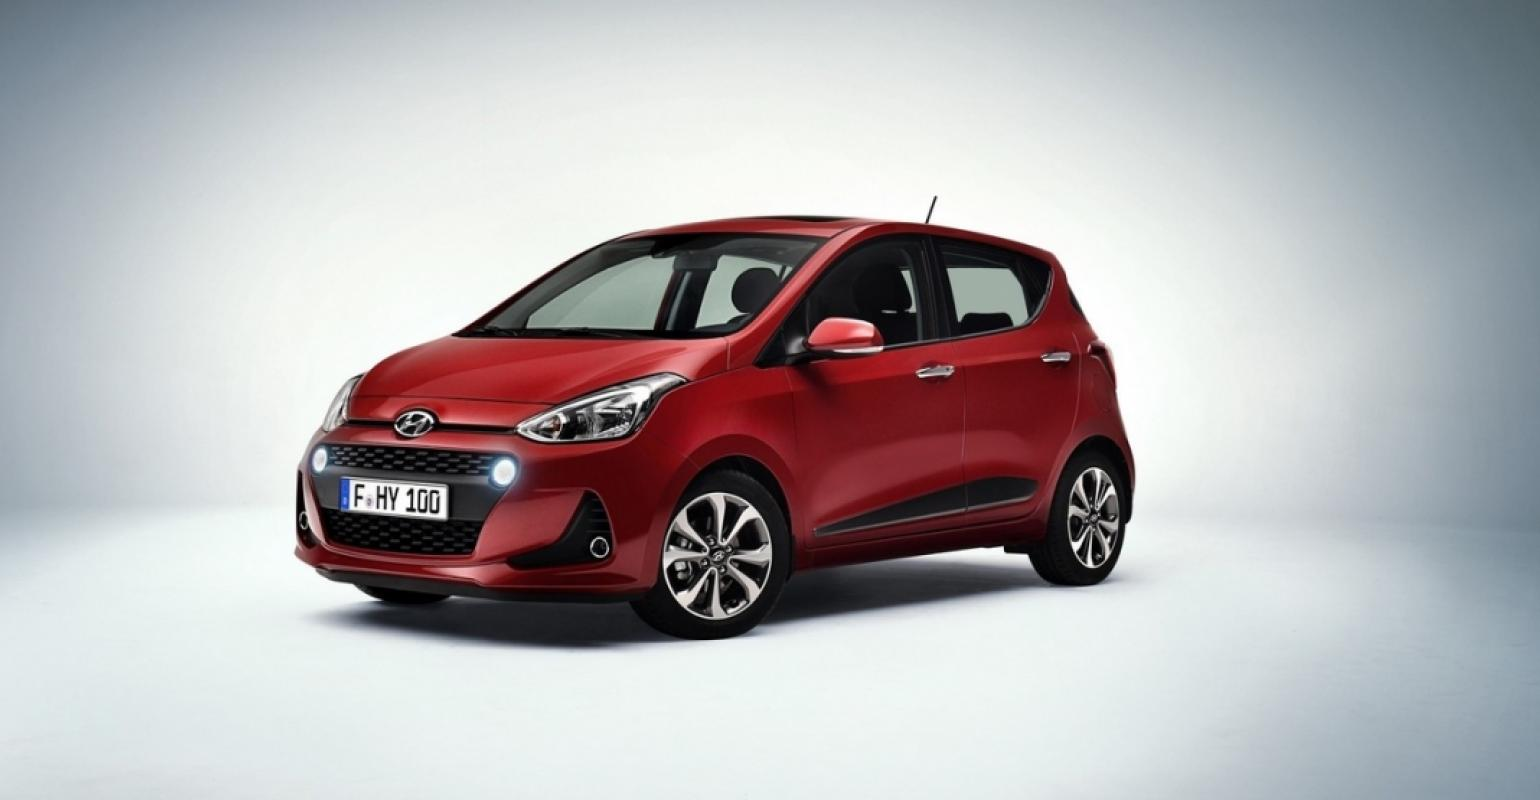 Hyundai Hints At Second Generation I10 Small Car